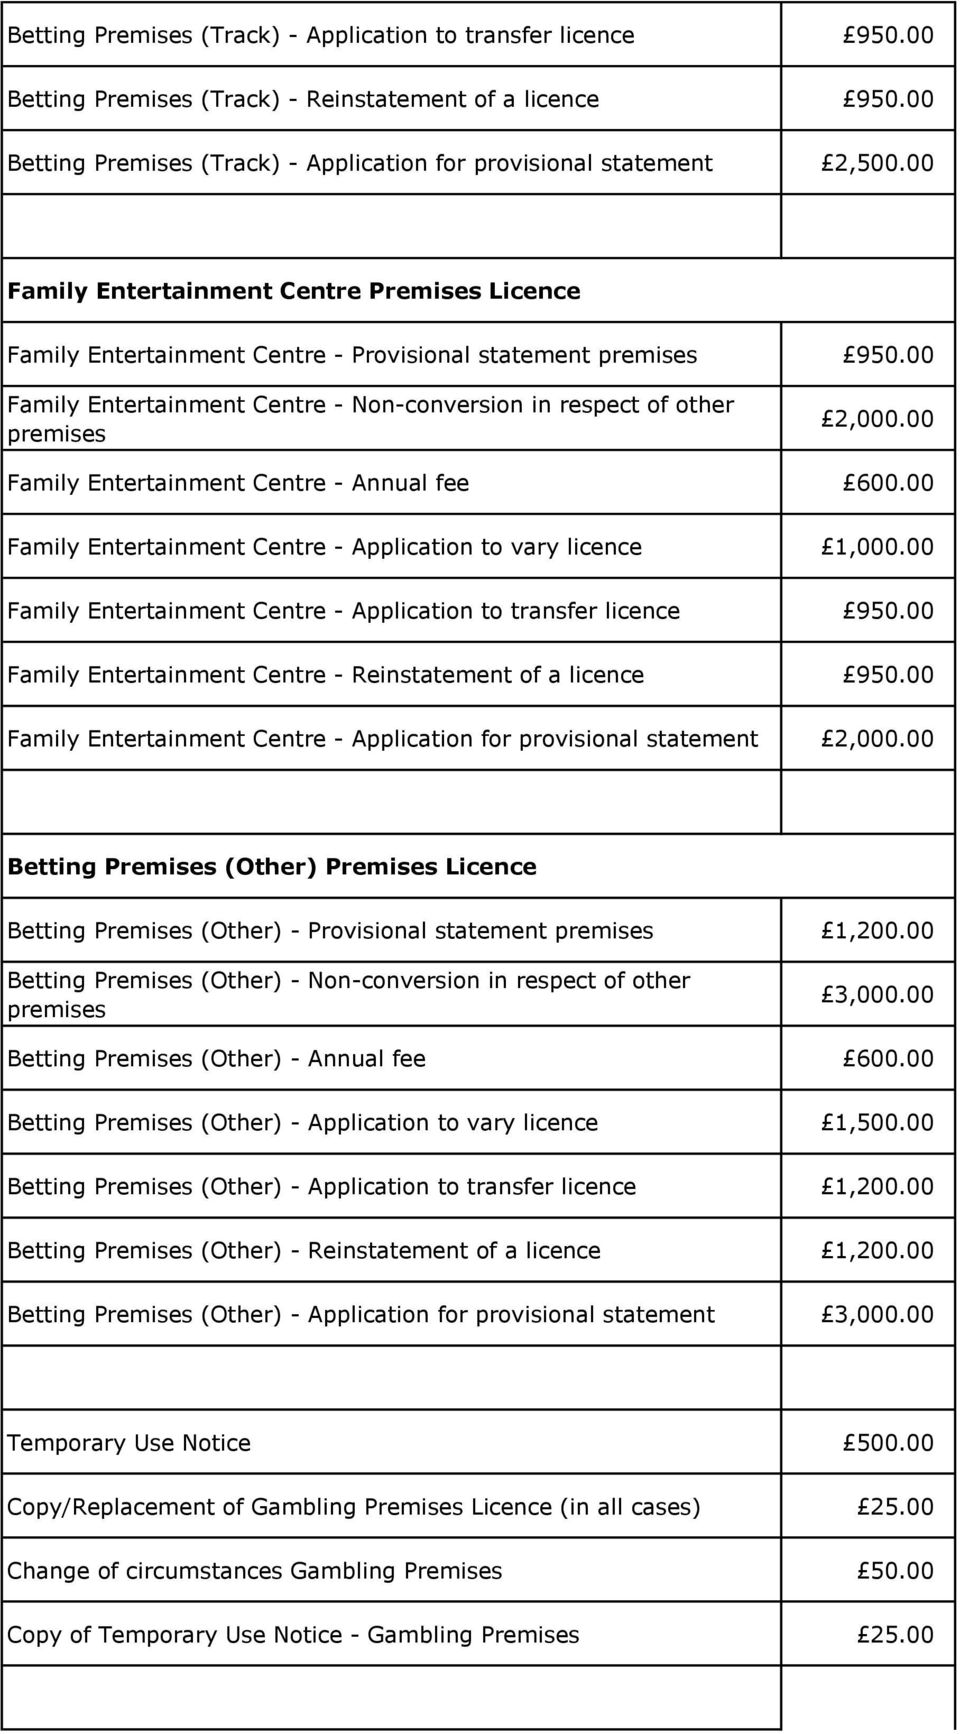 00 Family Entertainment Centre - Annual fee 600.00 Family Entertainment Centre - Application to vary licence 1,000.00 Family Entertainment Centre - Application to transfer licence 950.